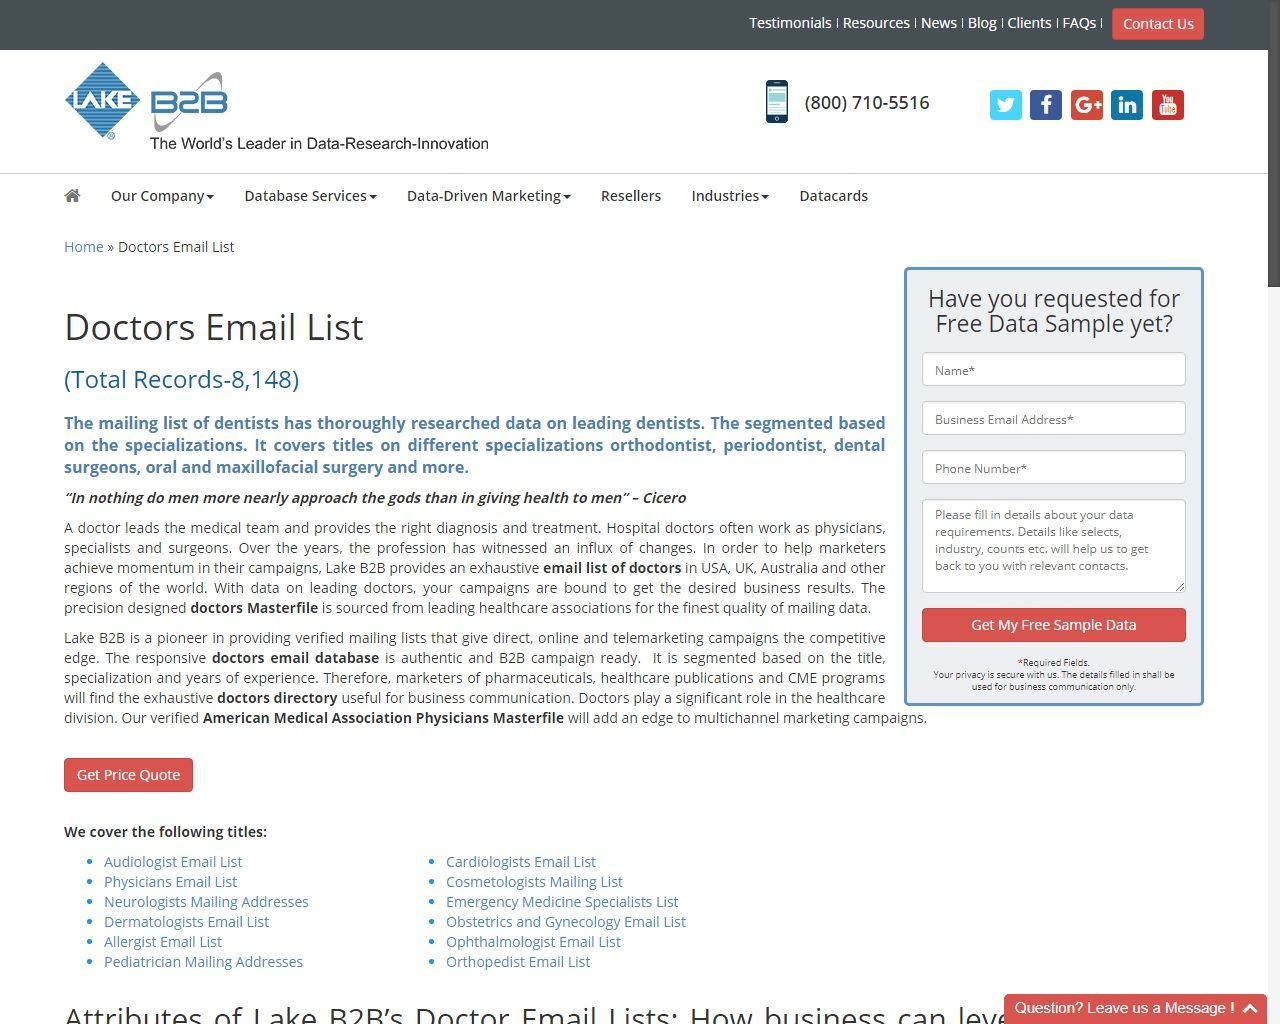 Doctors Email List | Email appending service | Email list